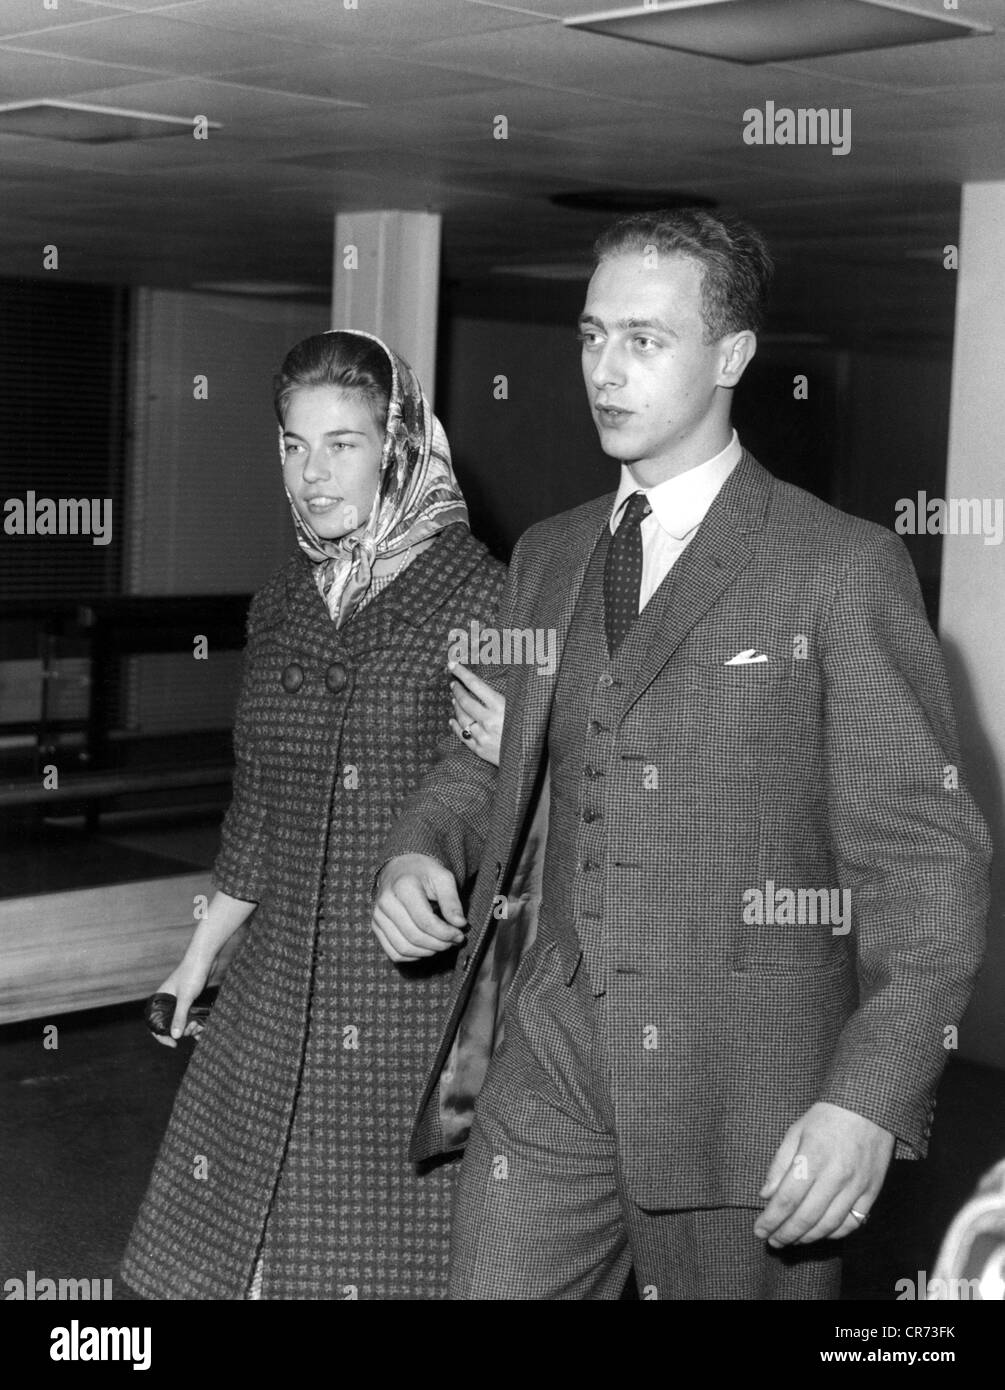 Amadeo Umberto, * 27.9.9.1943, Duke of Aosta since 29.1.1948, with fiance Claude Marie of Orleans, arrival at Linate - Stock Image